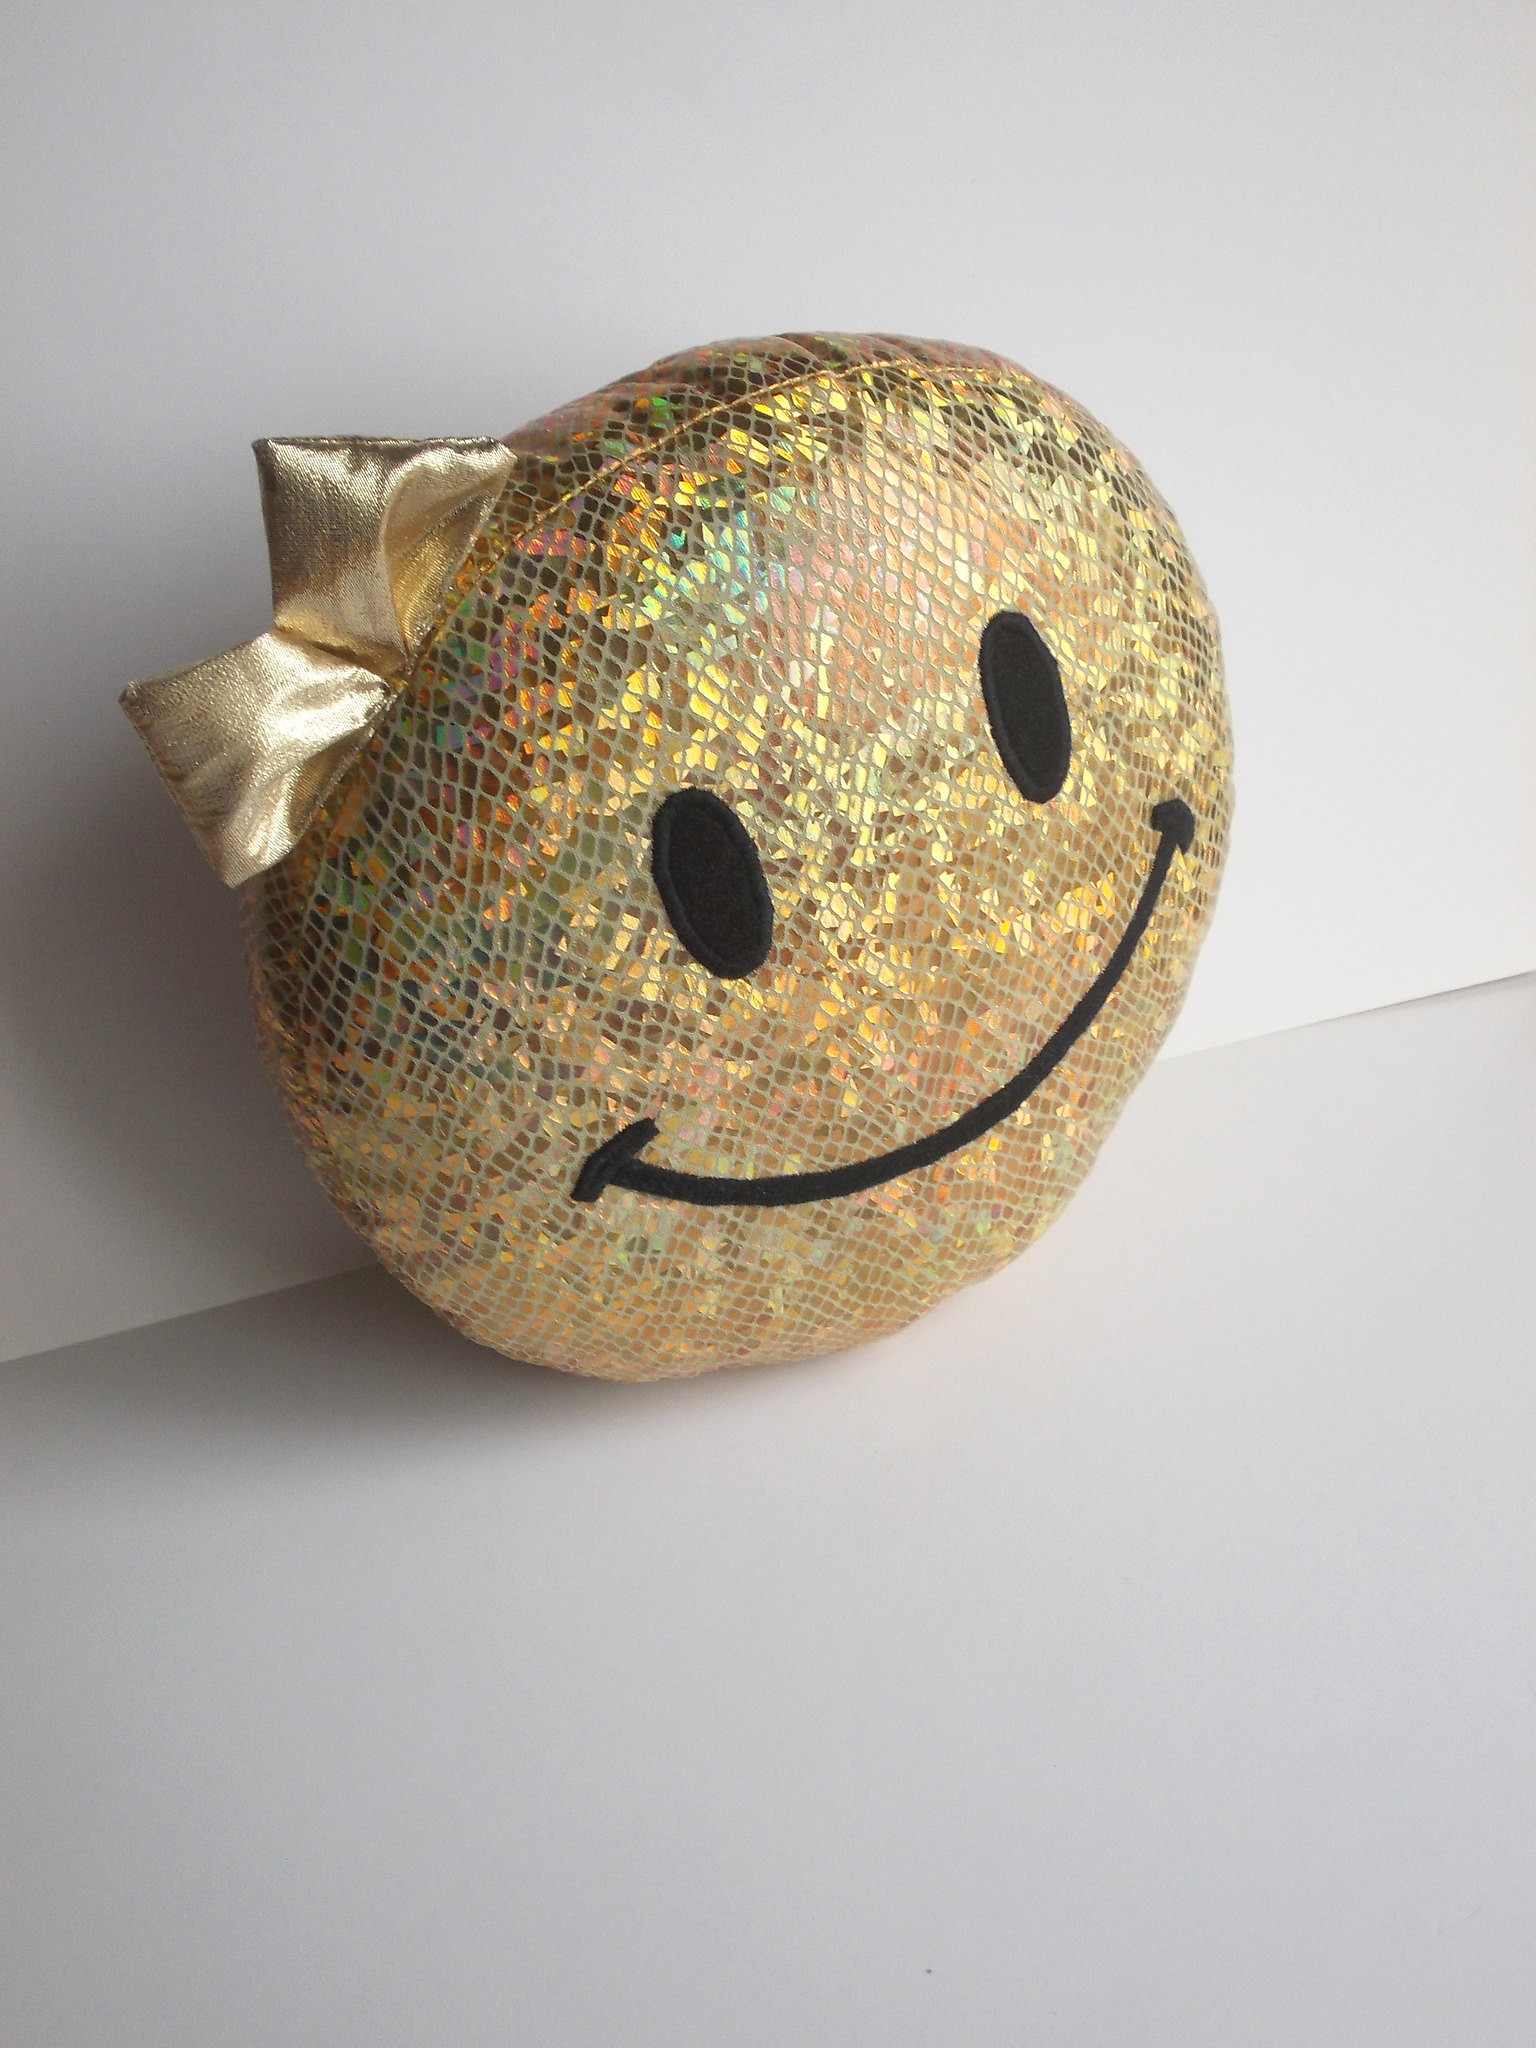 hologram smiley face, golden smiley stuffed toy_15